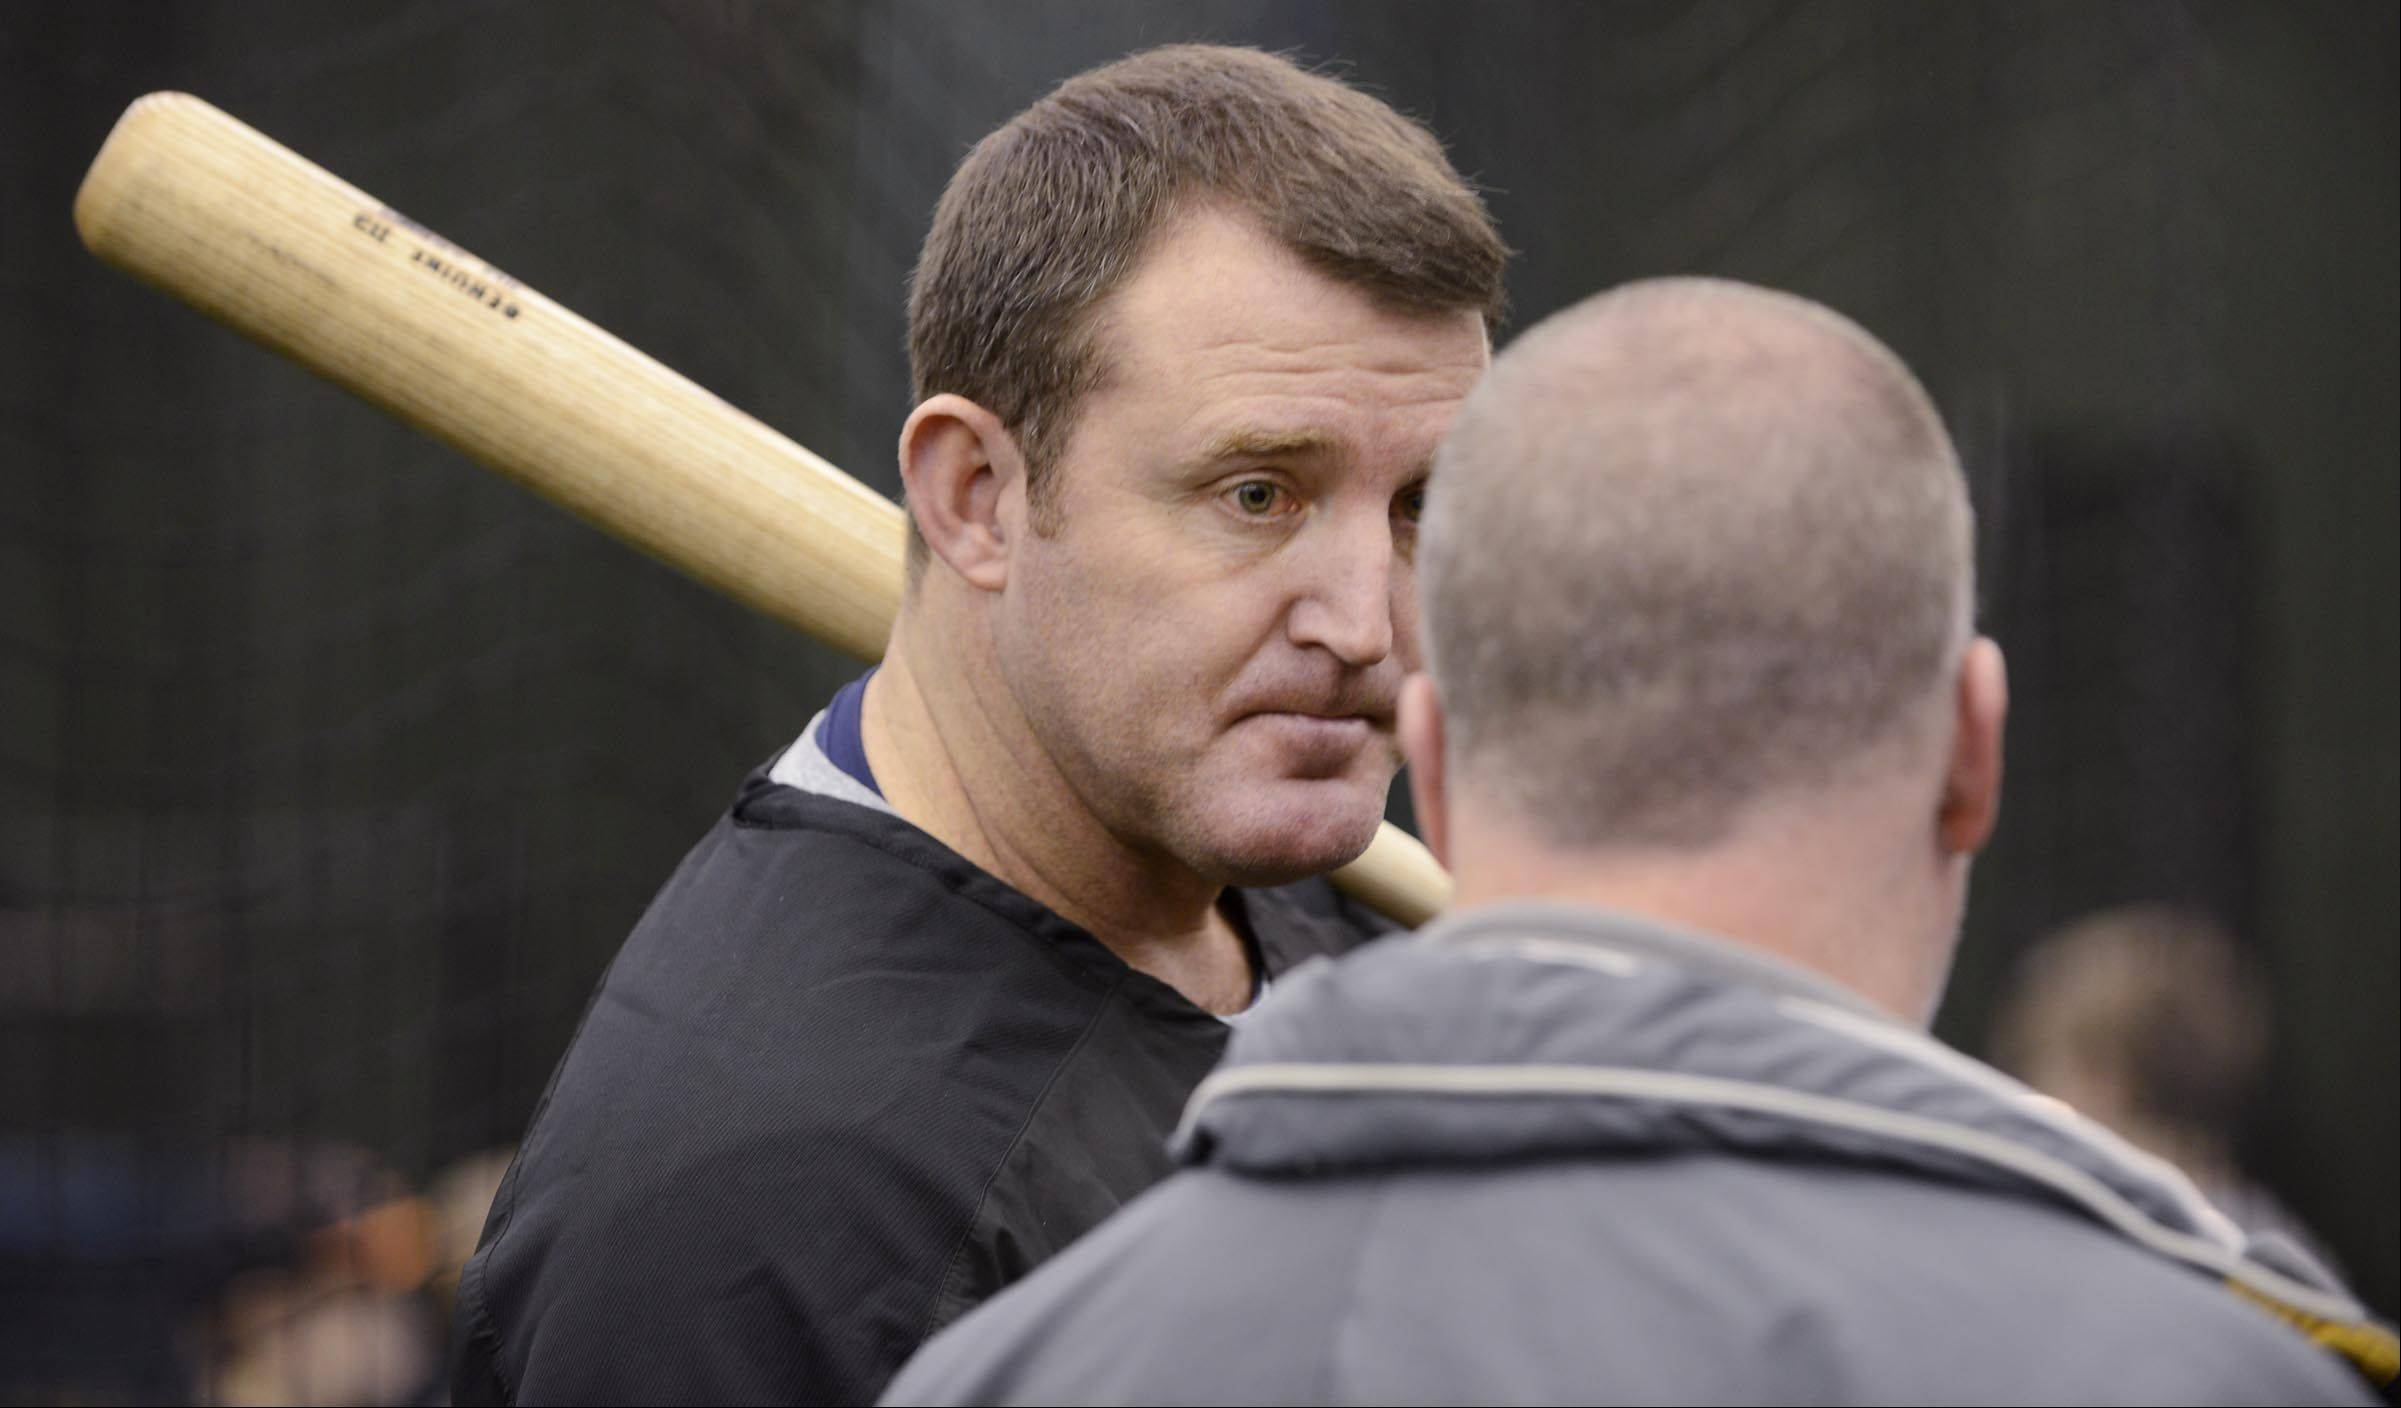 "Five-time Major League Baseball All-Star and former Chicago White Sox player Jim Thome was at the Chicago Bulls/White Sox Academy in Lisle on Sunday giving a hitting clinic for young players. ""This is great. It's fun to give back,"" Thome said."